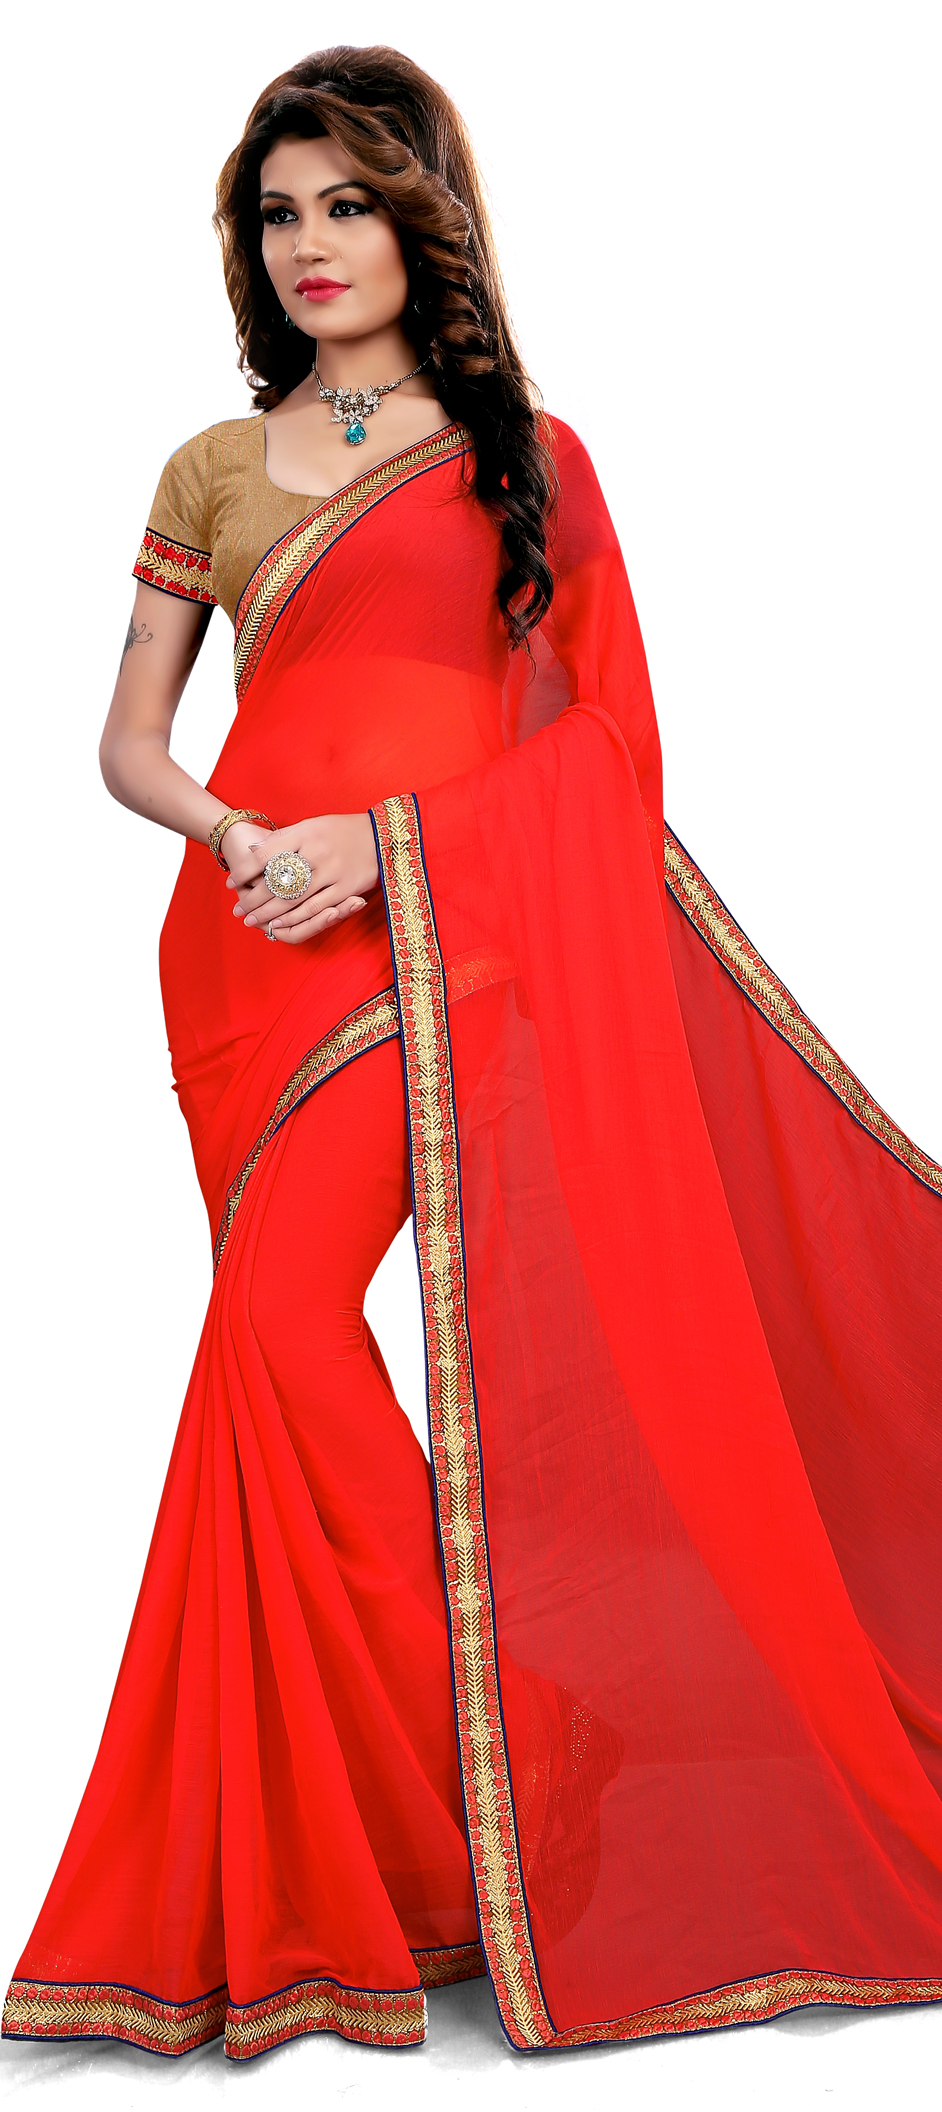 731154: Red and Maroon color family Embroidered Sarees, Party Wear ...